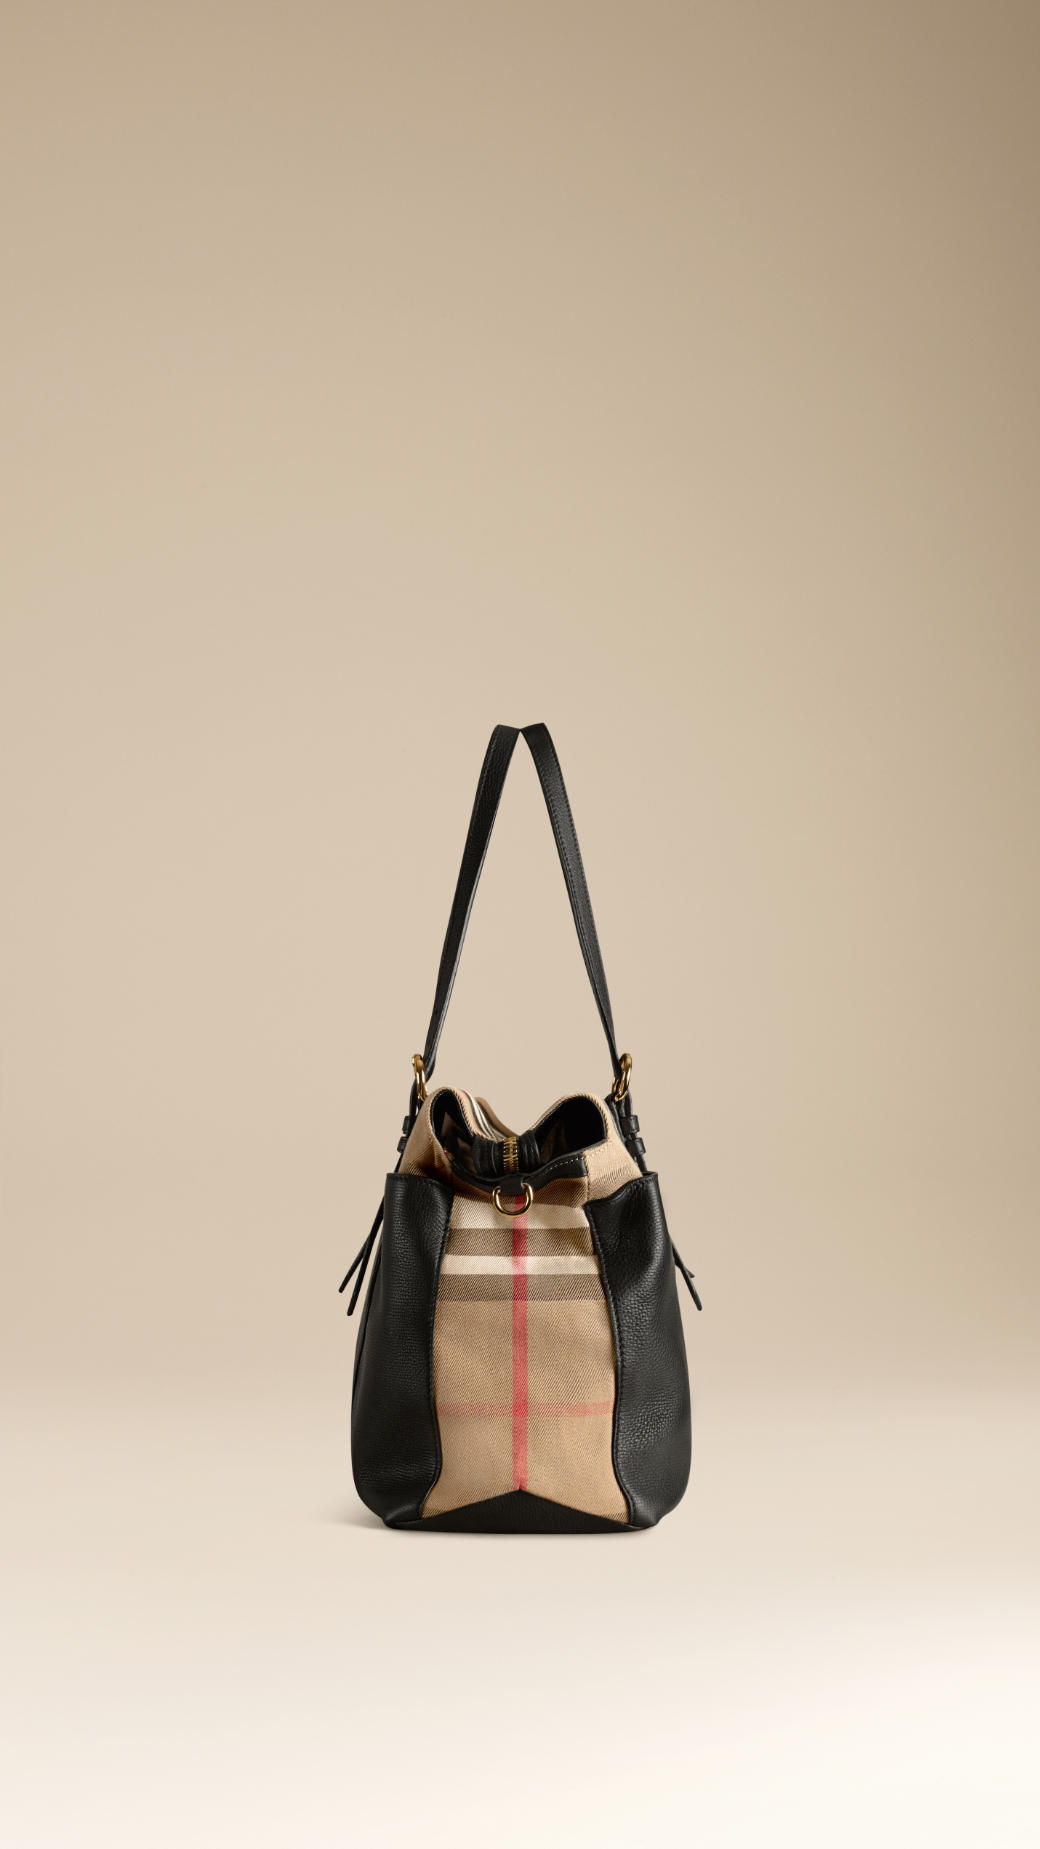 8ba9102db108 Lyst - Burberry House Check And Leather Baby Changing Bag in Black